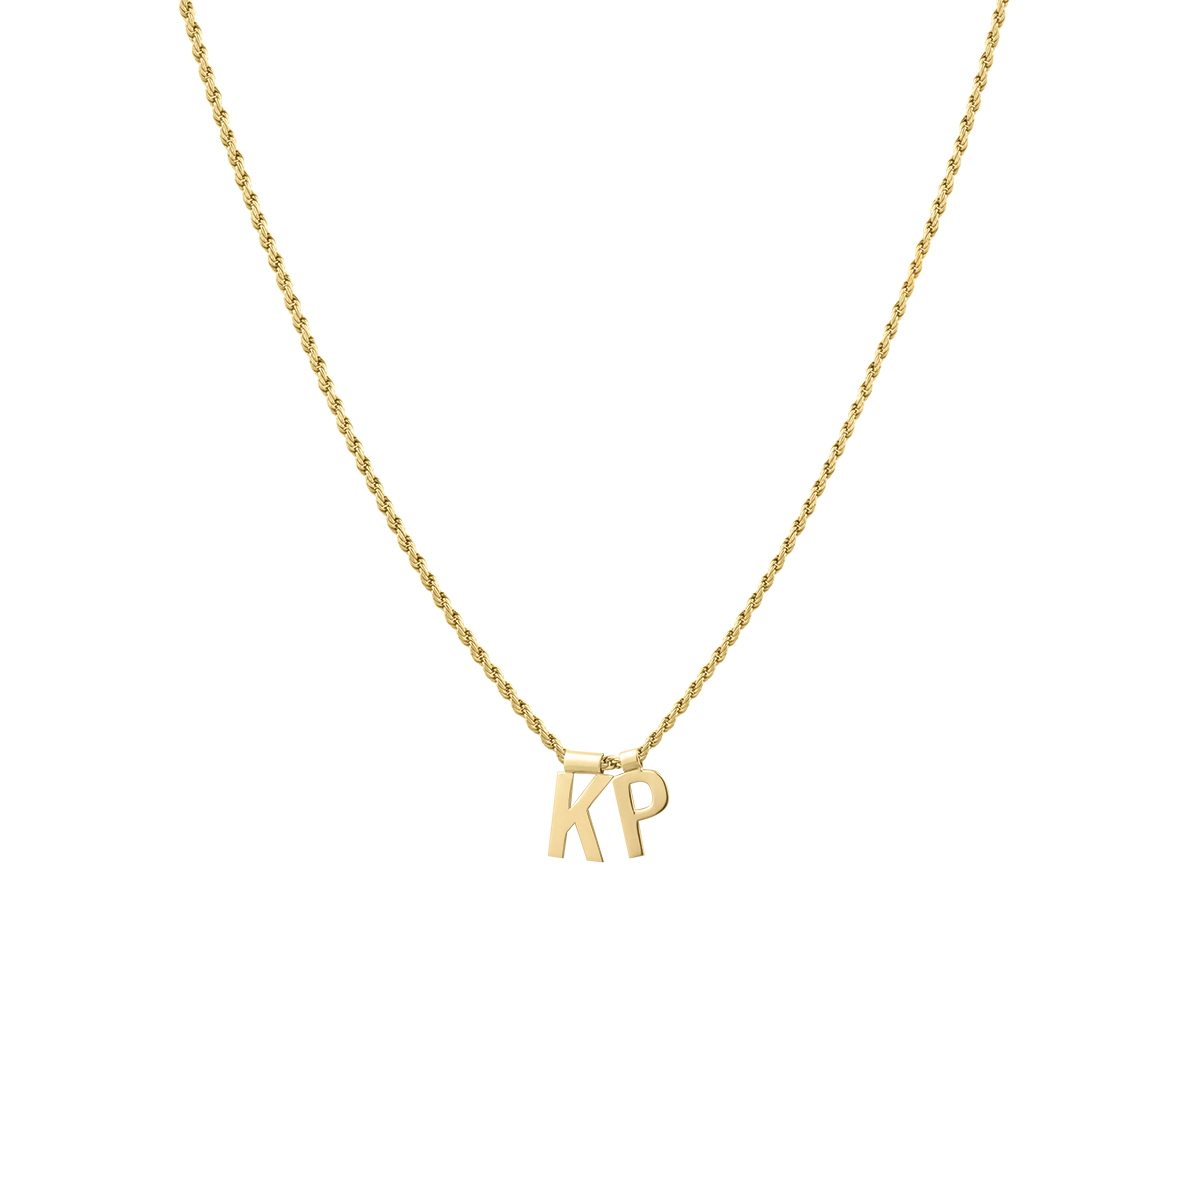 Ruby Rope Letter Necklace gold KP